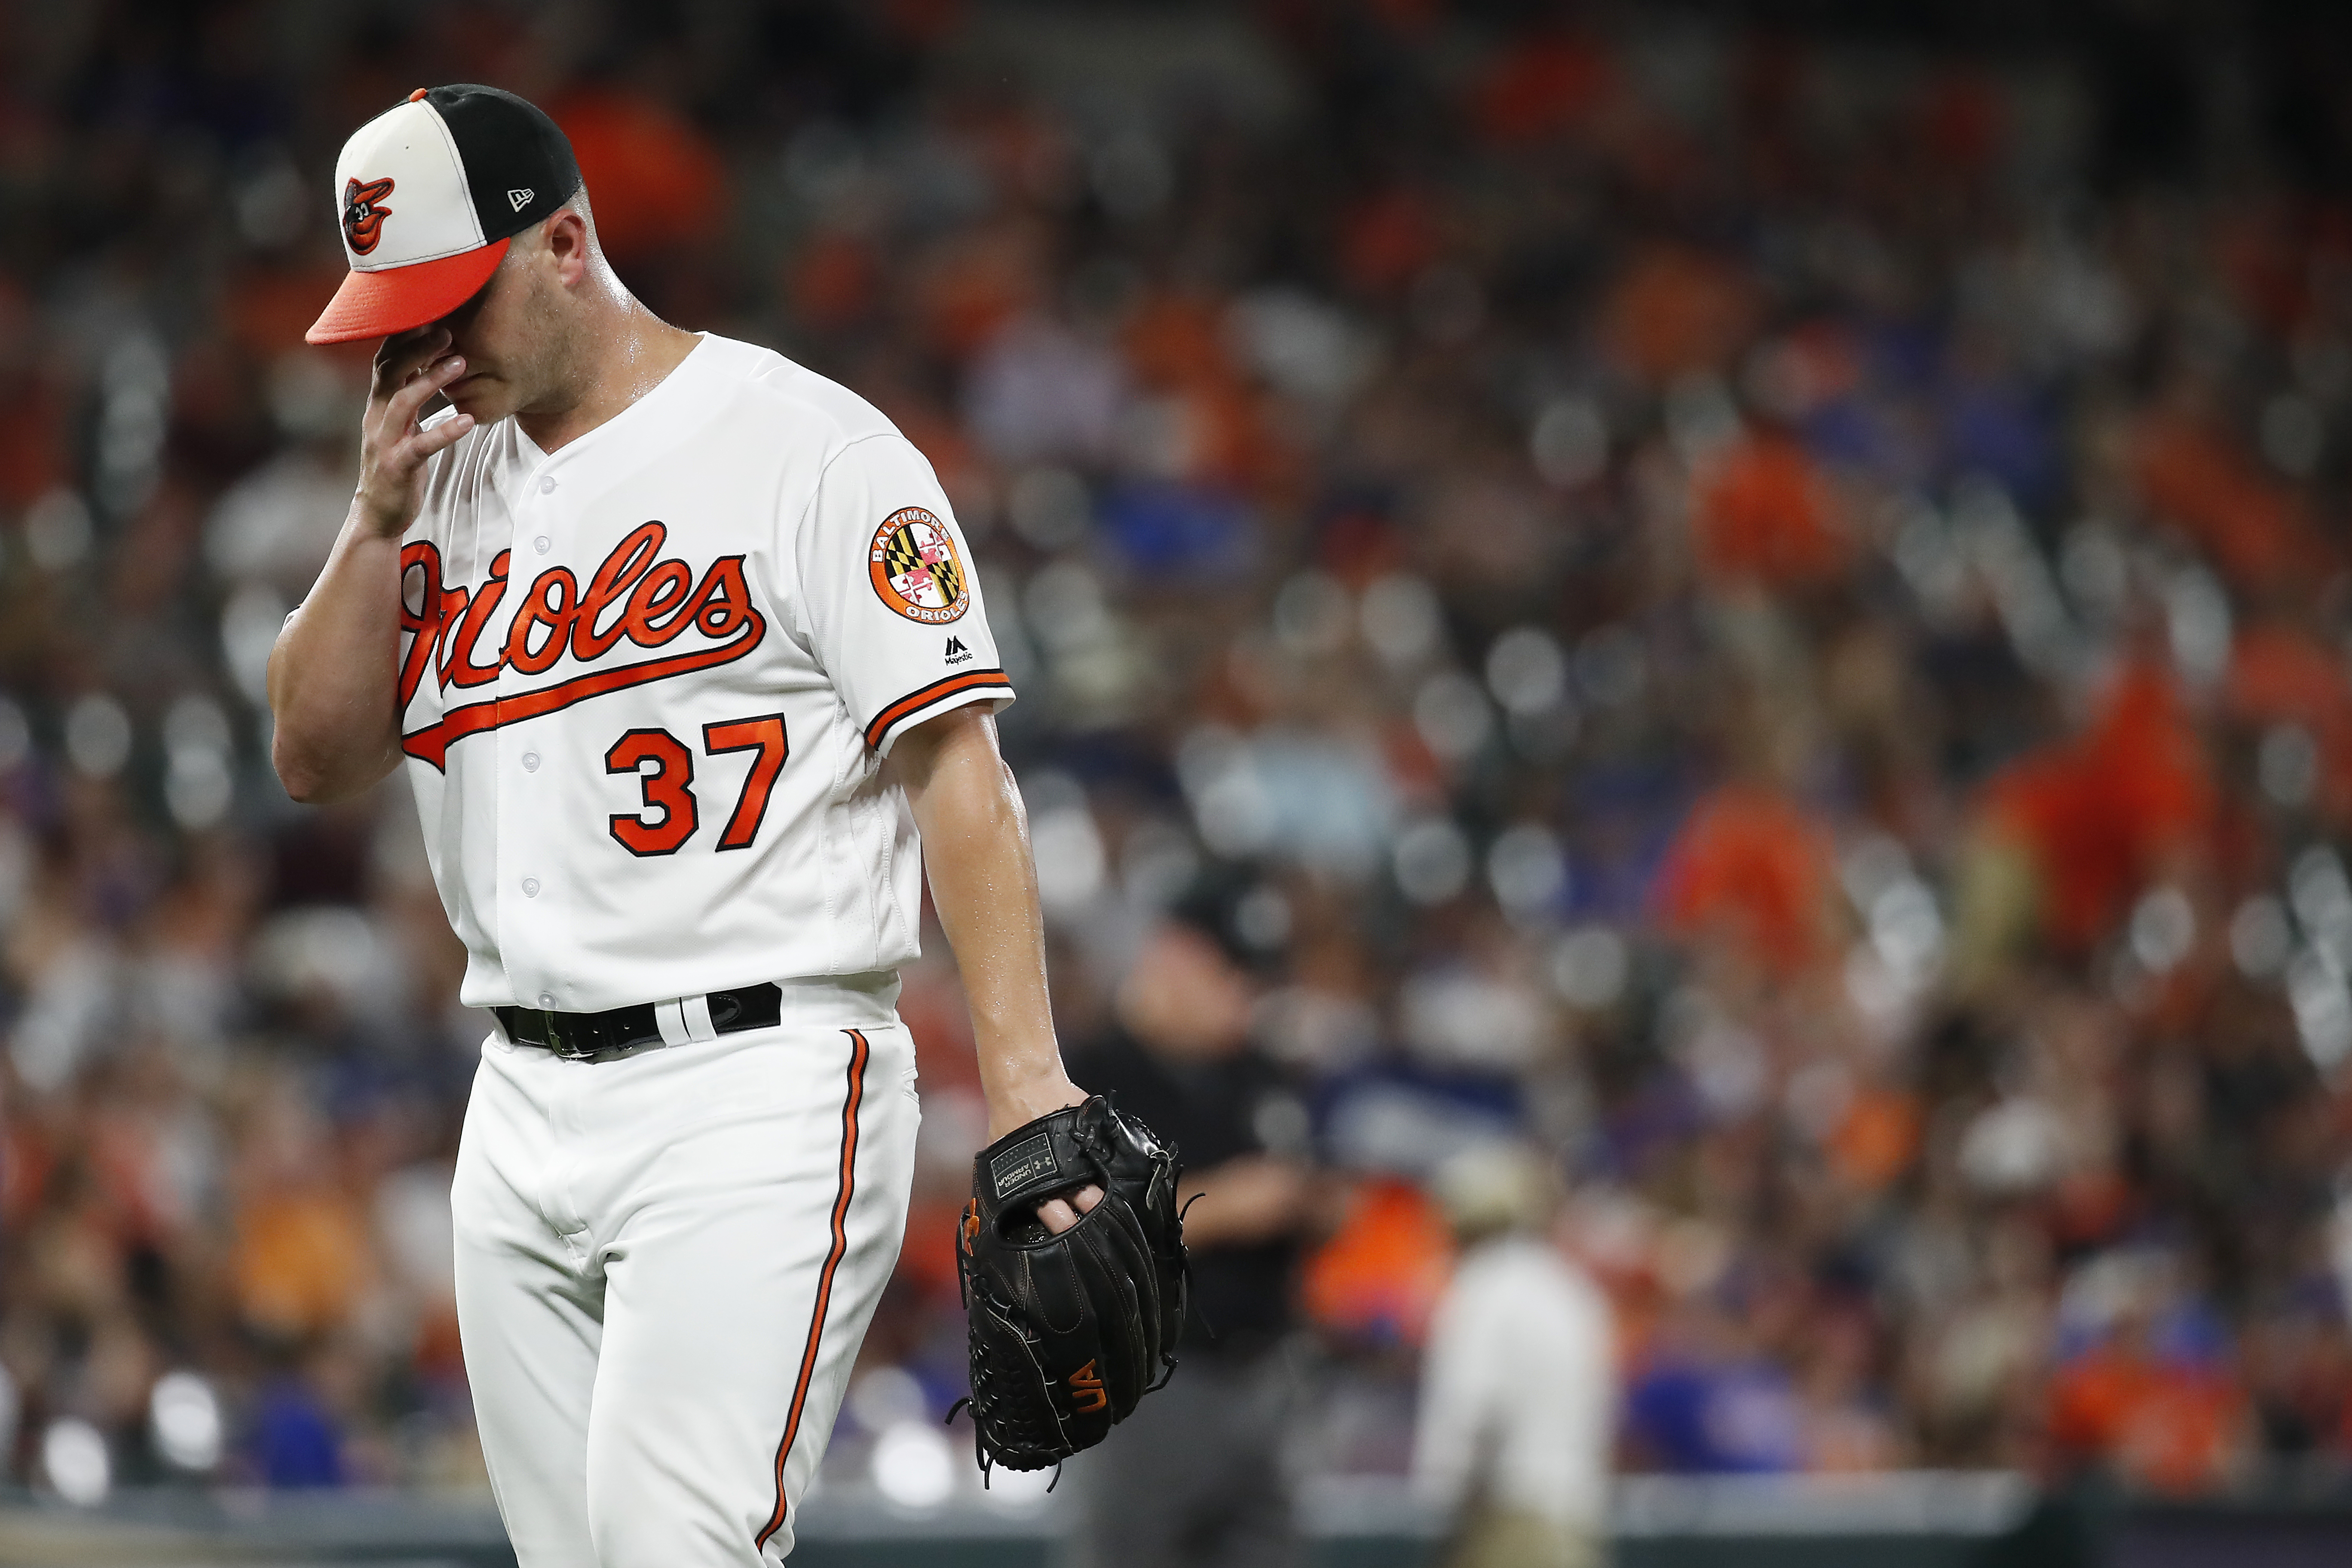 f5b07da51d6 Looking ahead to the Orioles offseason and an already daunting 2019 ...